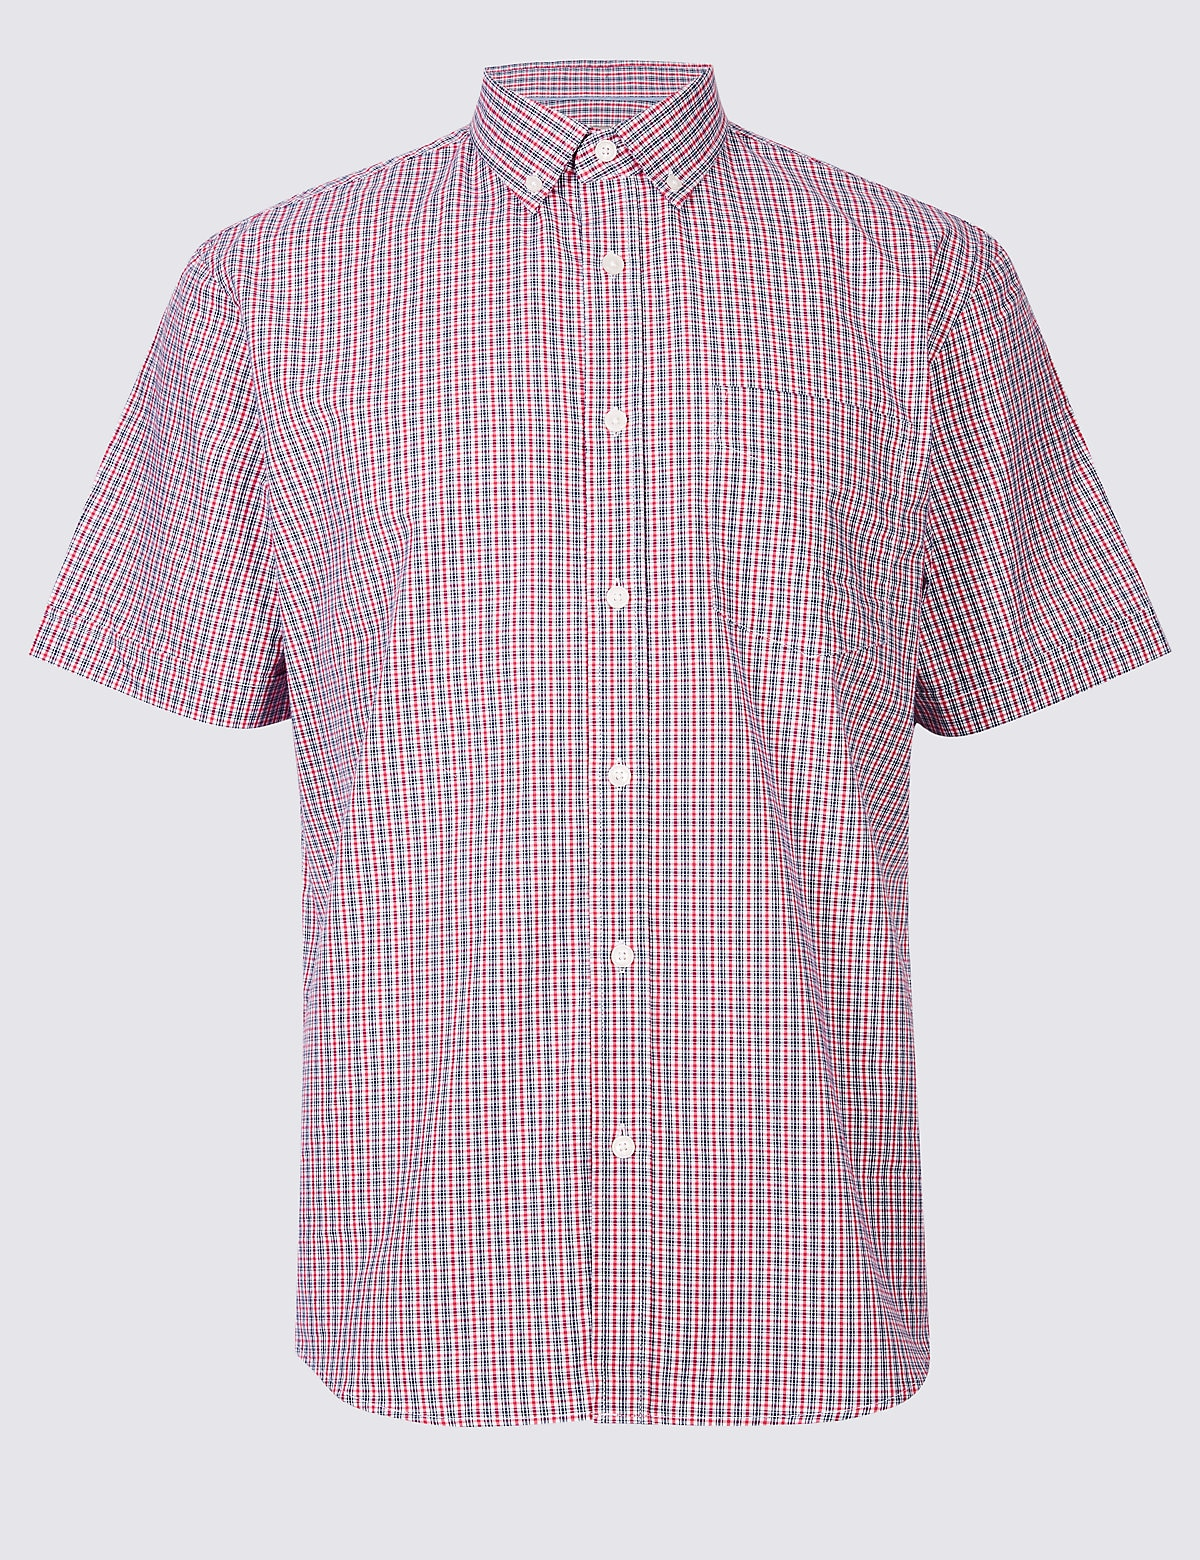 Marks & Spencer Bright Pink Pure Cotton Checked Shirt with Pocket